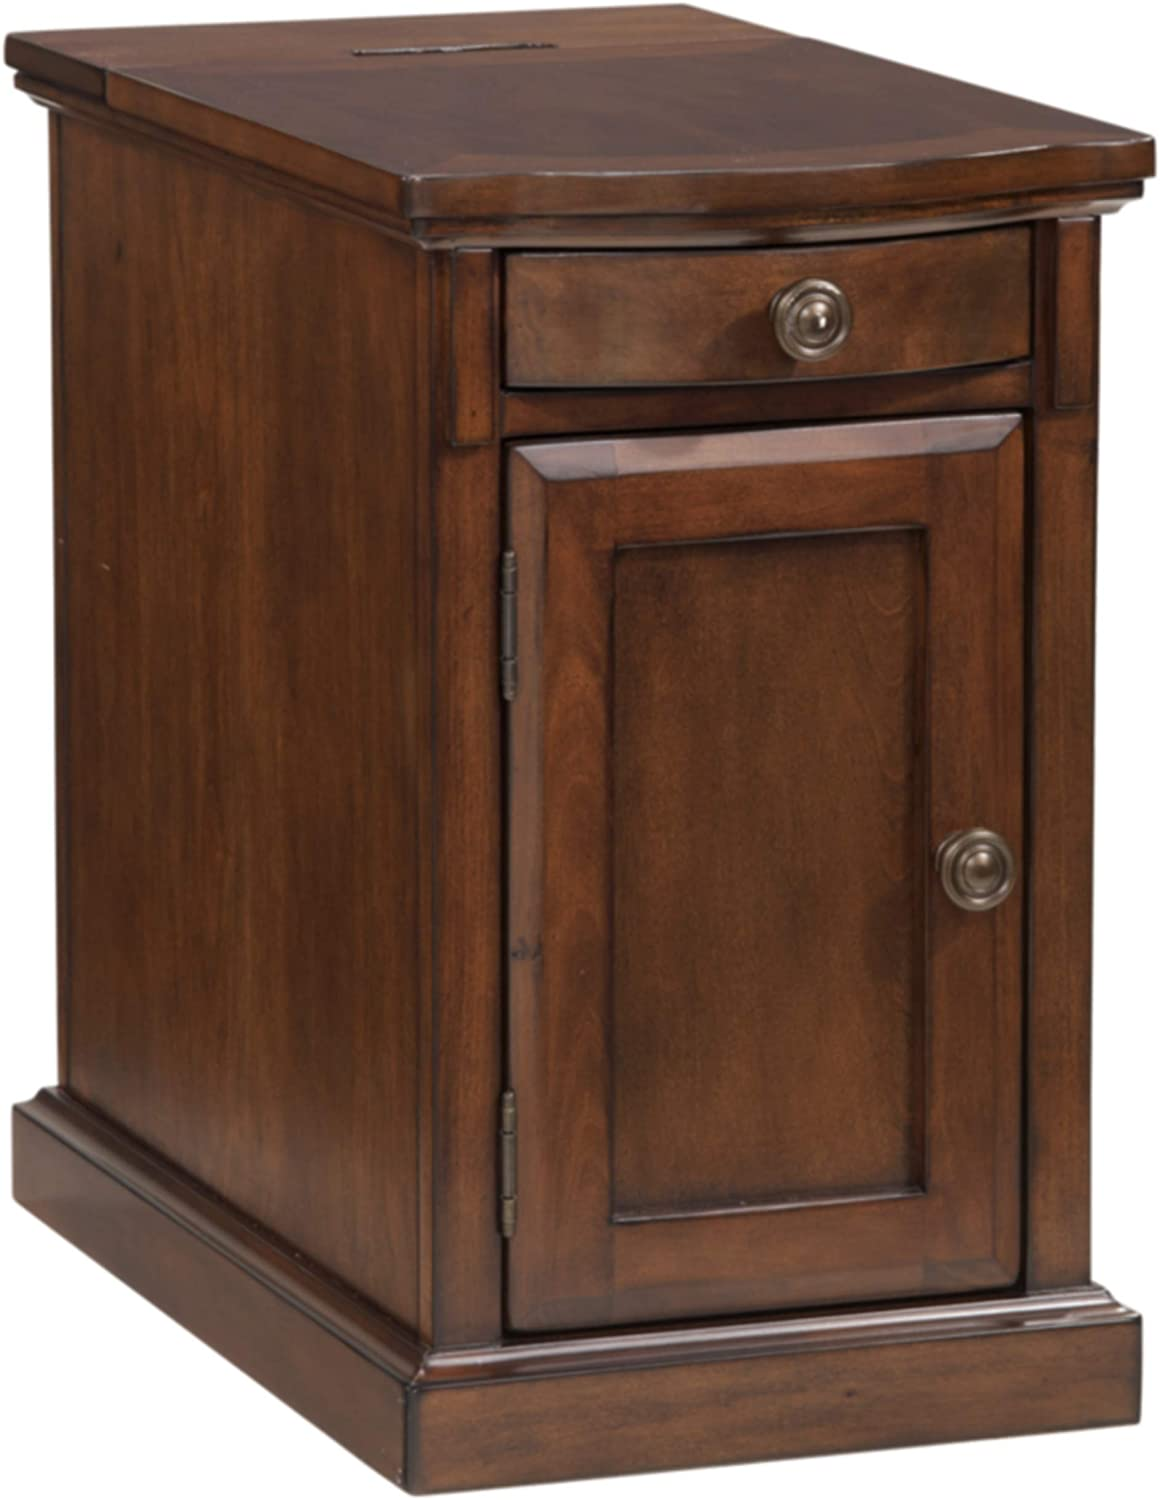 Amazon Com Signature Design By Ashley Laflorn Chairside End Table With Usb Ports Outlets Medium Brown Furniture Decor